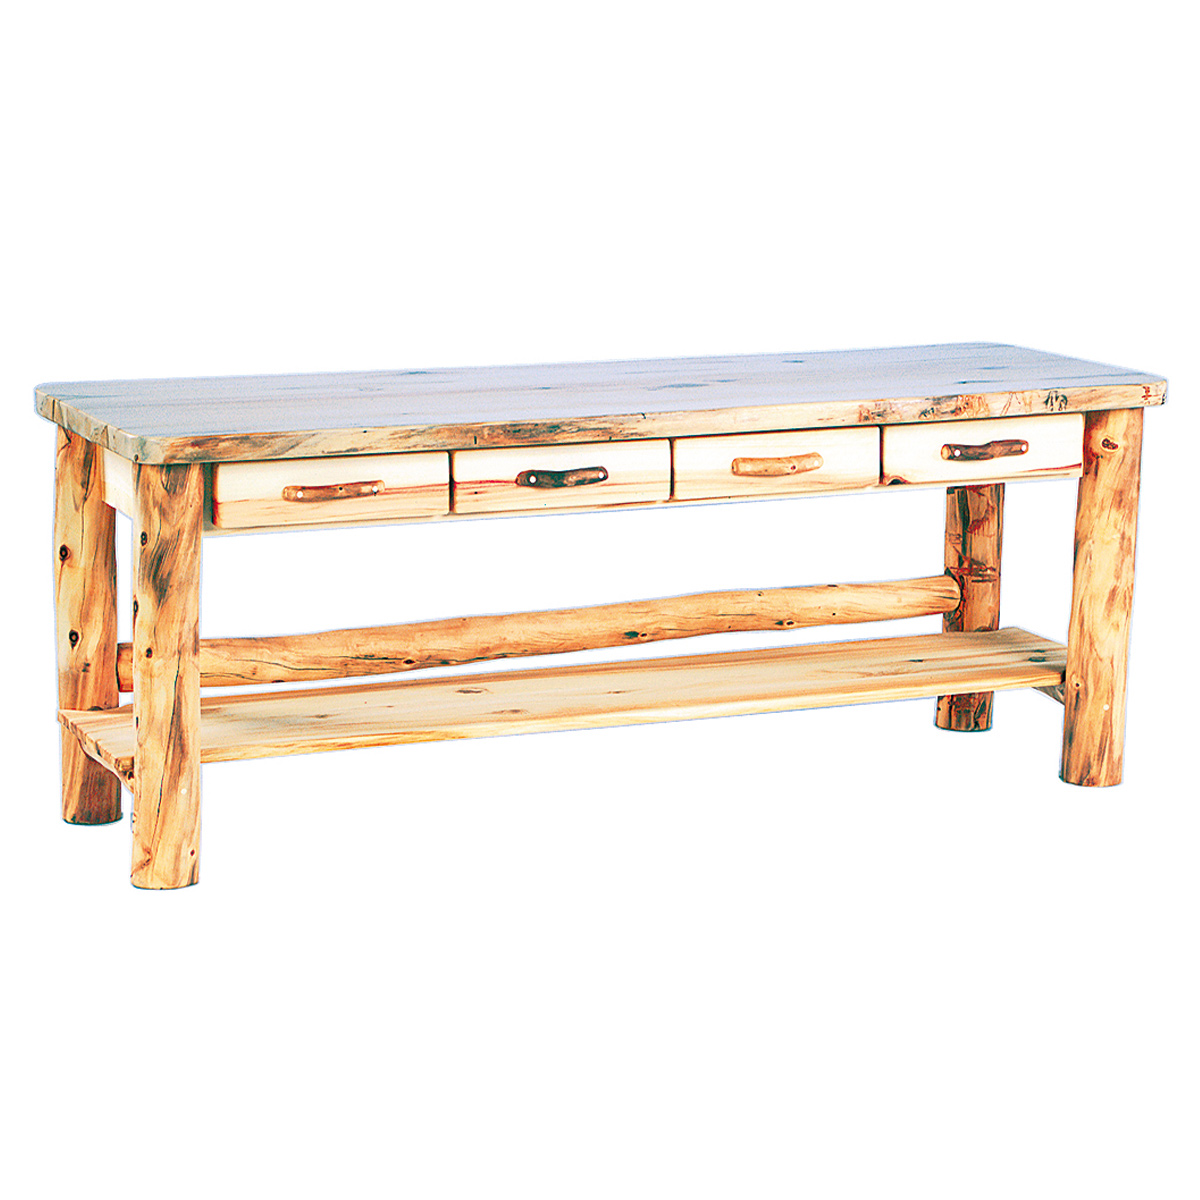 Heirloom Sofa Table With Drawers 6 Foot